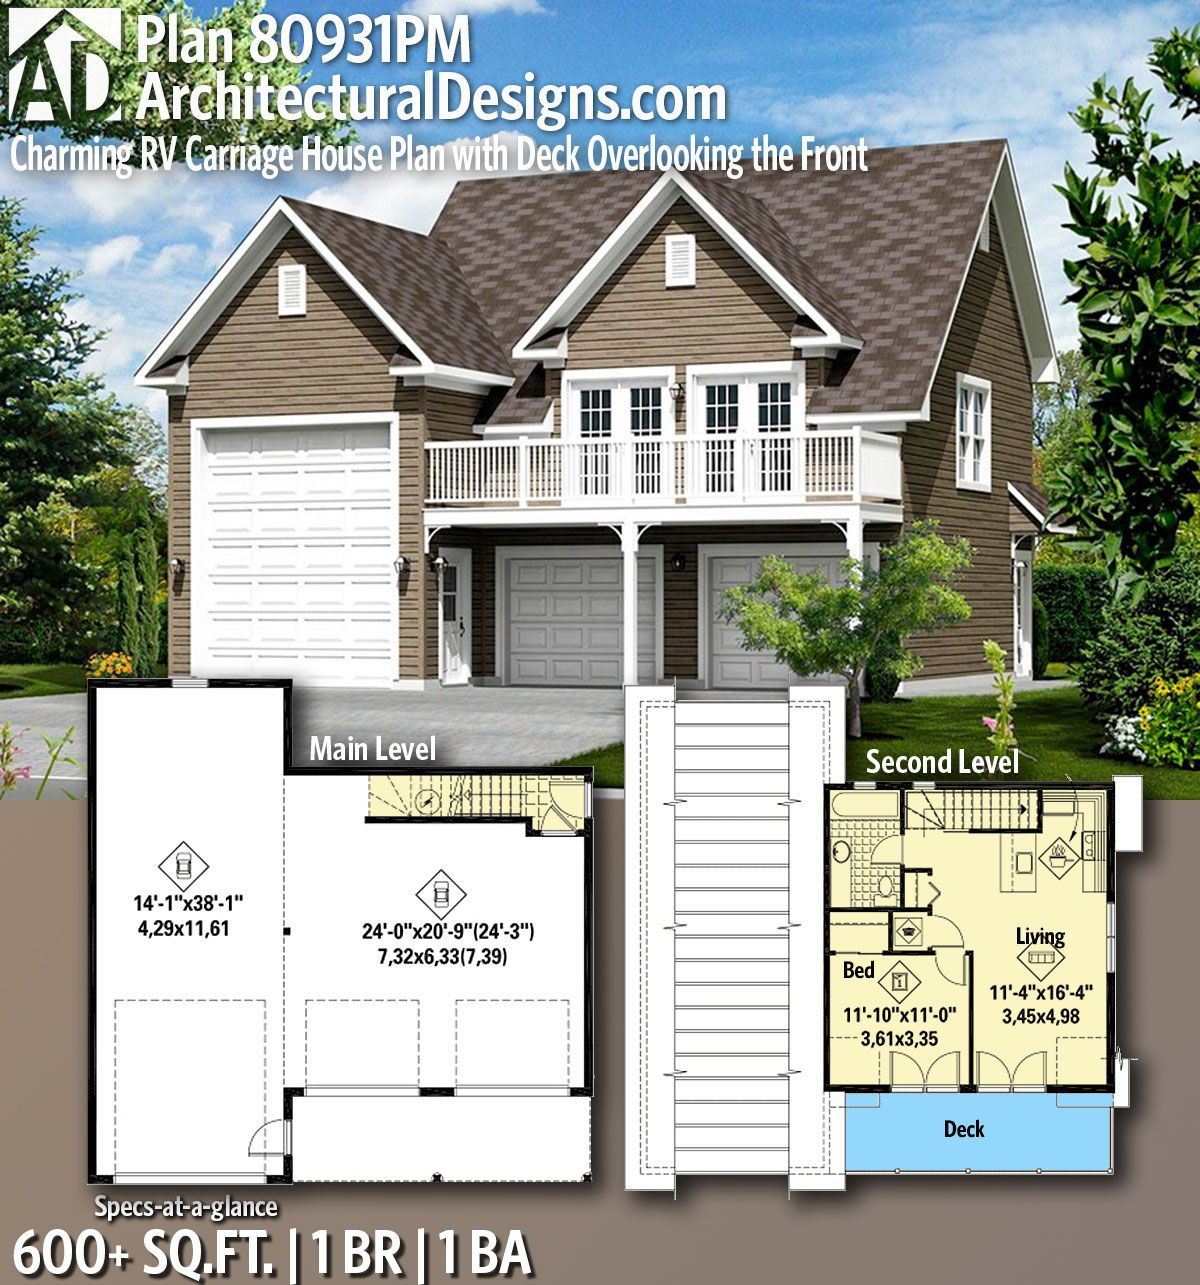 Plan 80931pm Charming Rv Carriage House Plan With Deck Overlooking The Front Carriage House Plans Garage House Plans House Plans